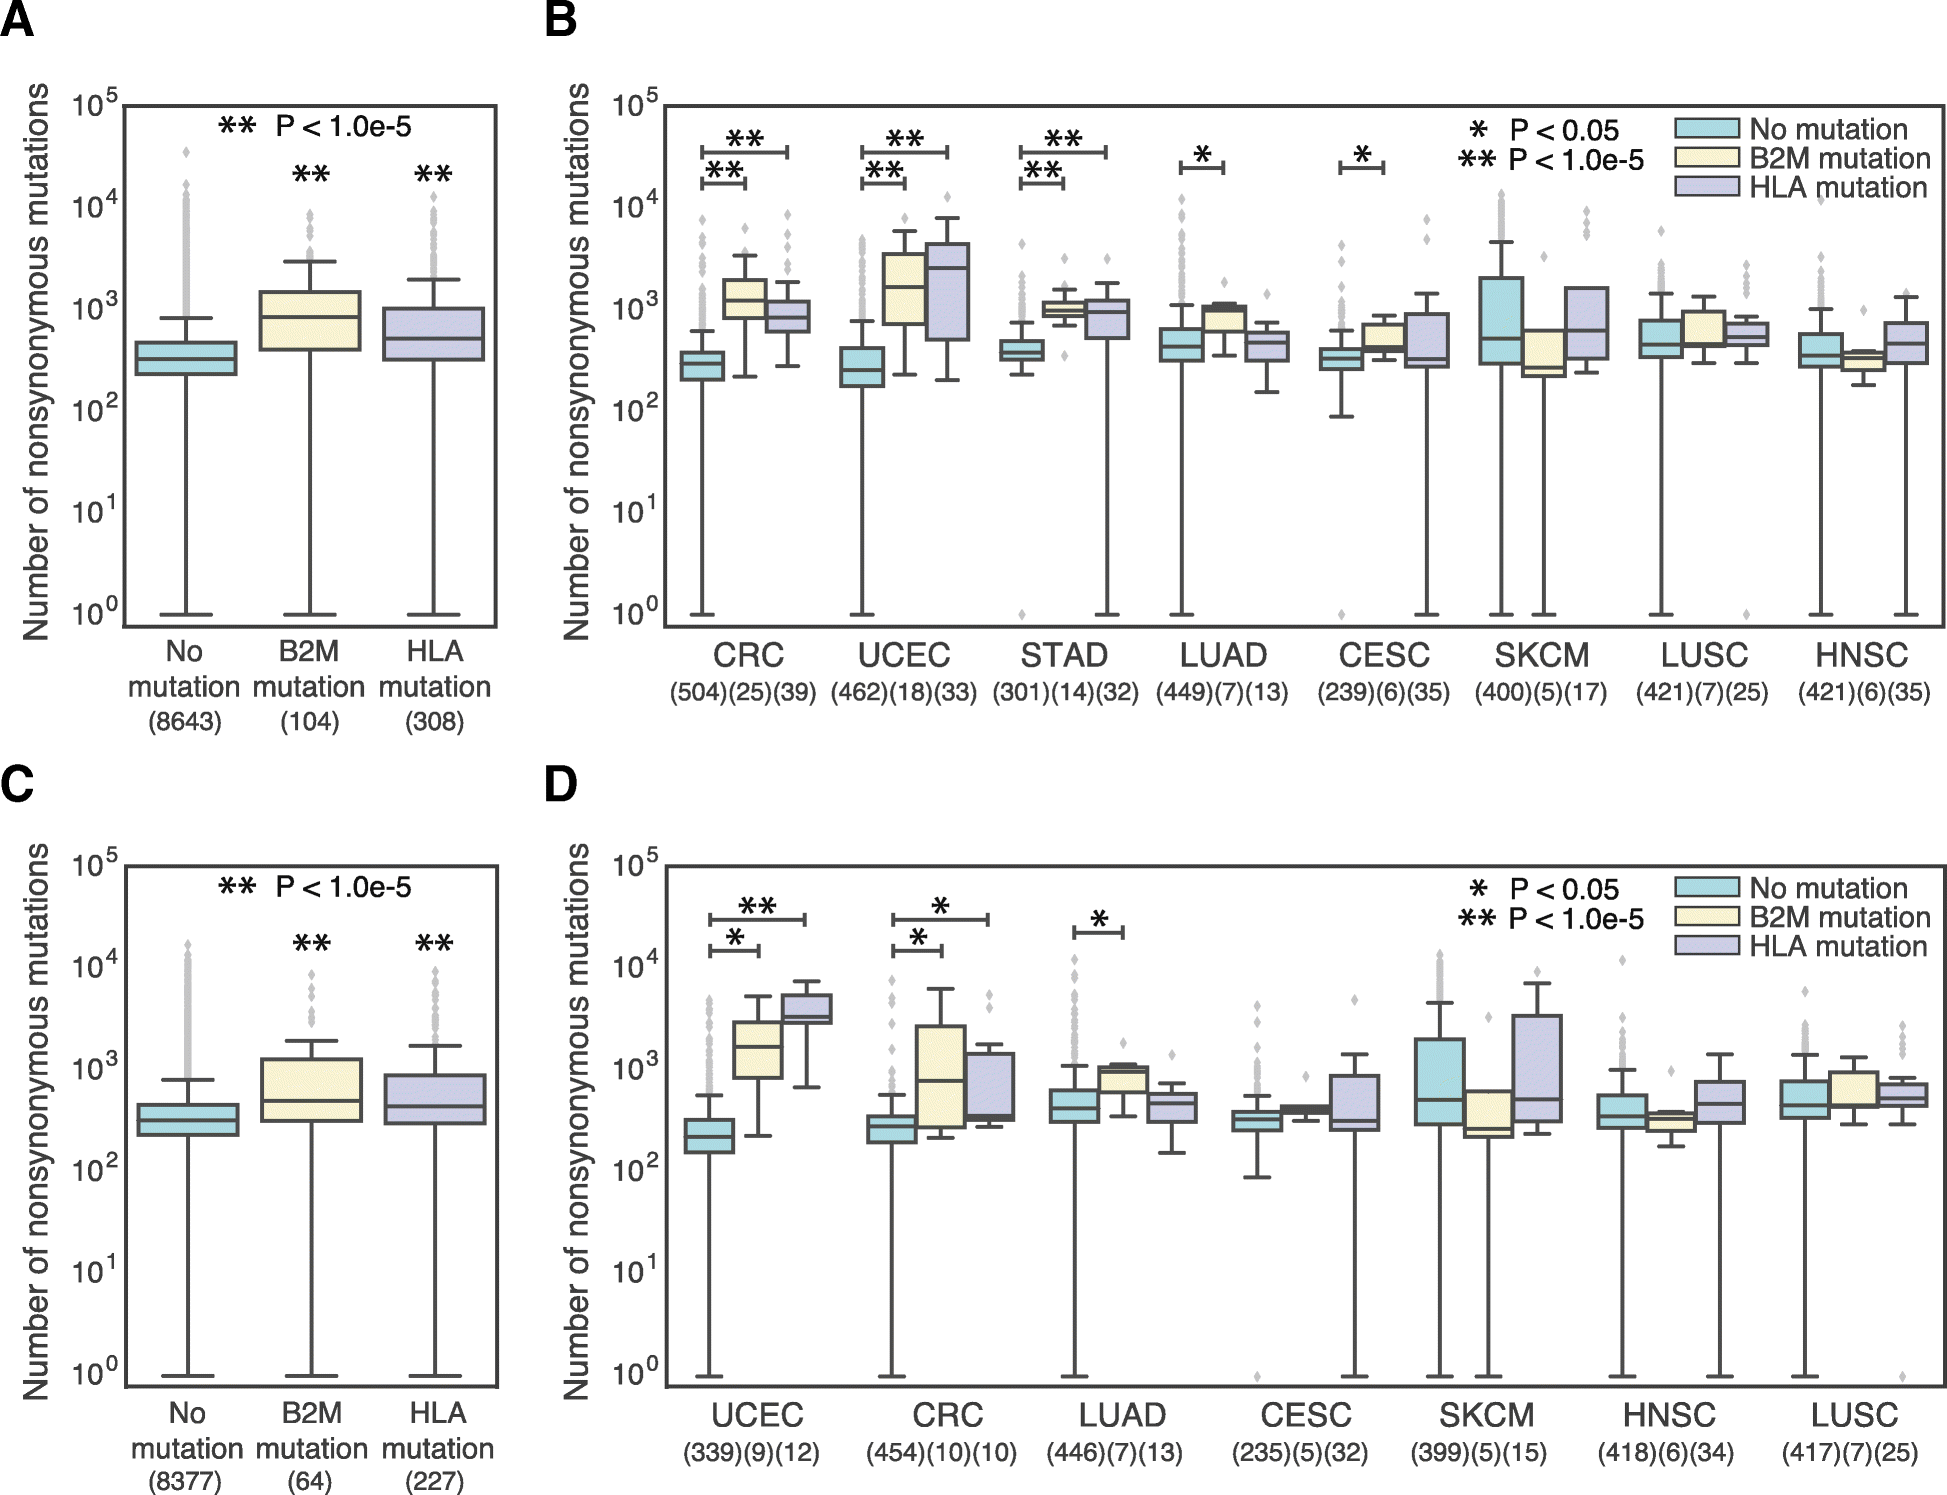 Elevated neoantigen levels in tumors with somatic mutations